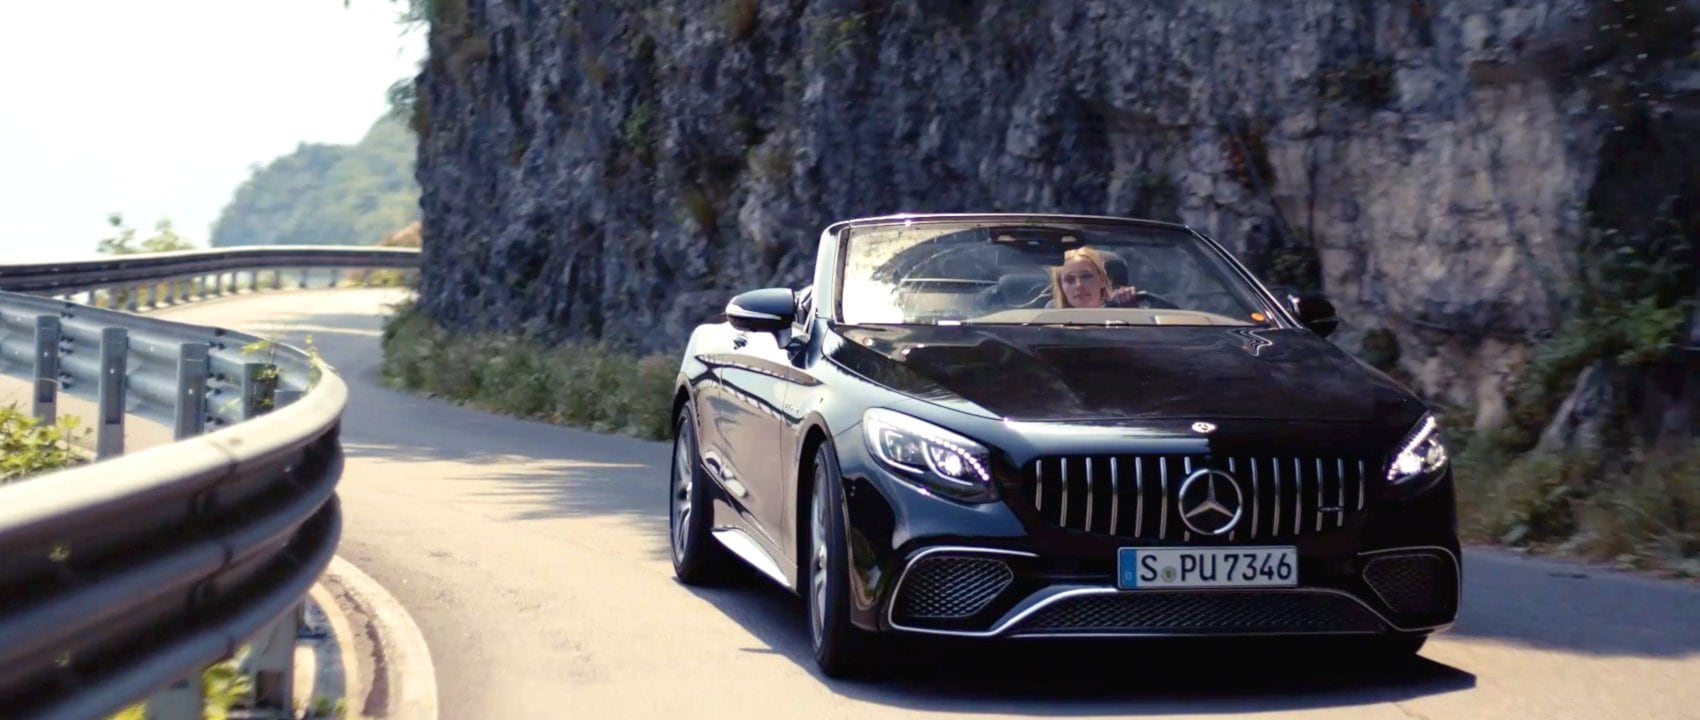 The Mercedes-AMG S 65 Cabriolet (A 217) in black on a country road at Lake Como in Italy.